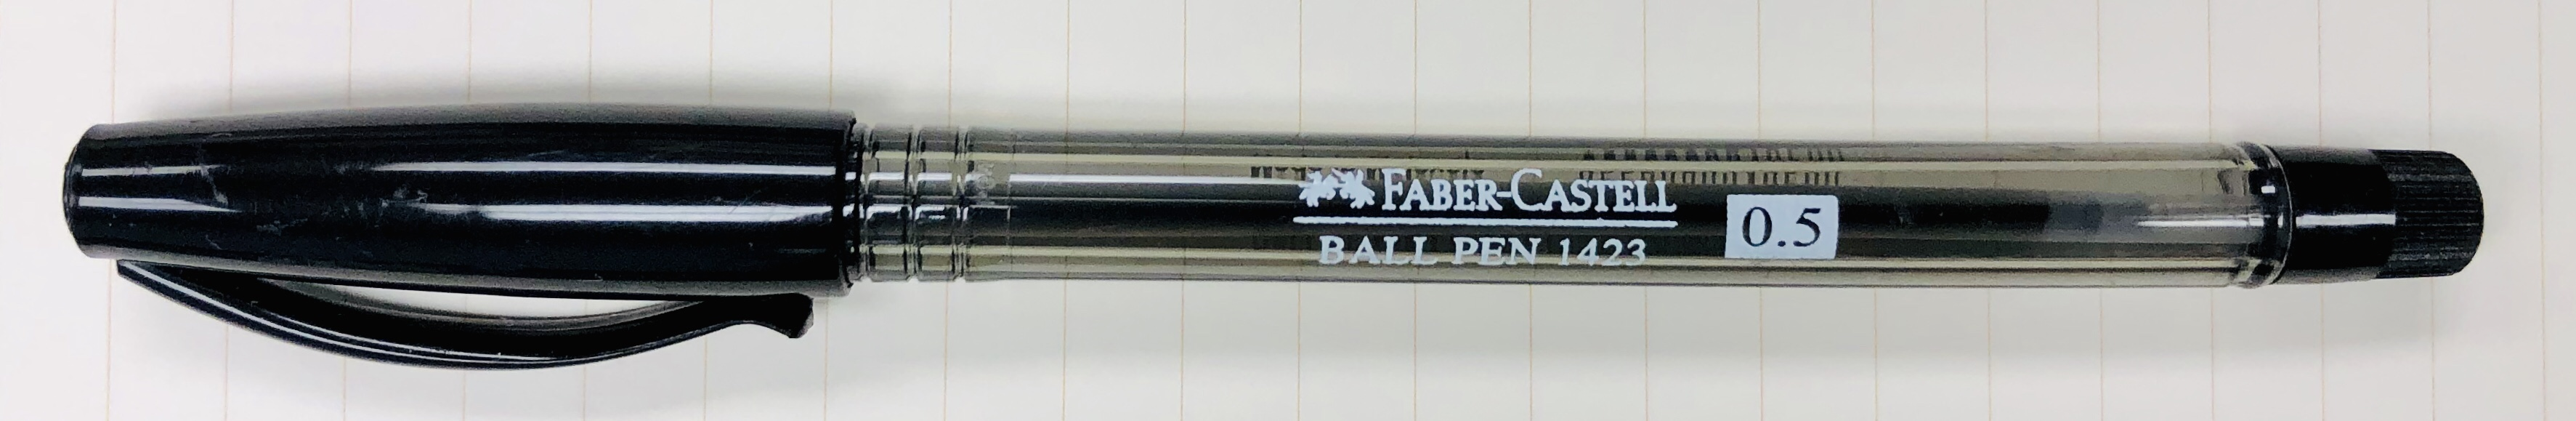 Review: Faber-Castell 1423, Ballpoint, 0.5mm